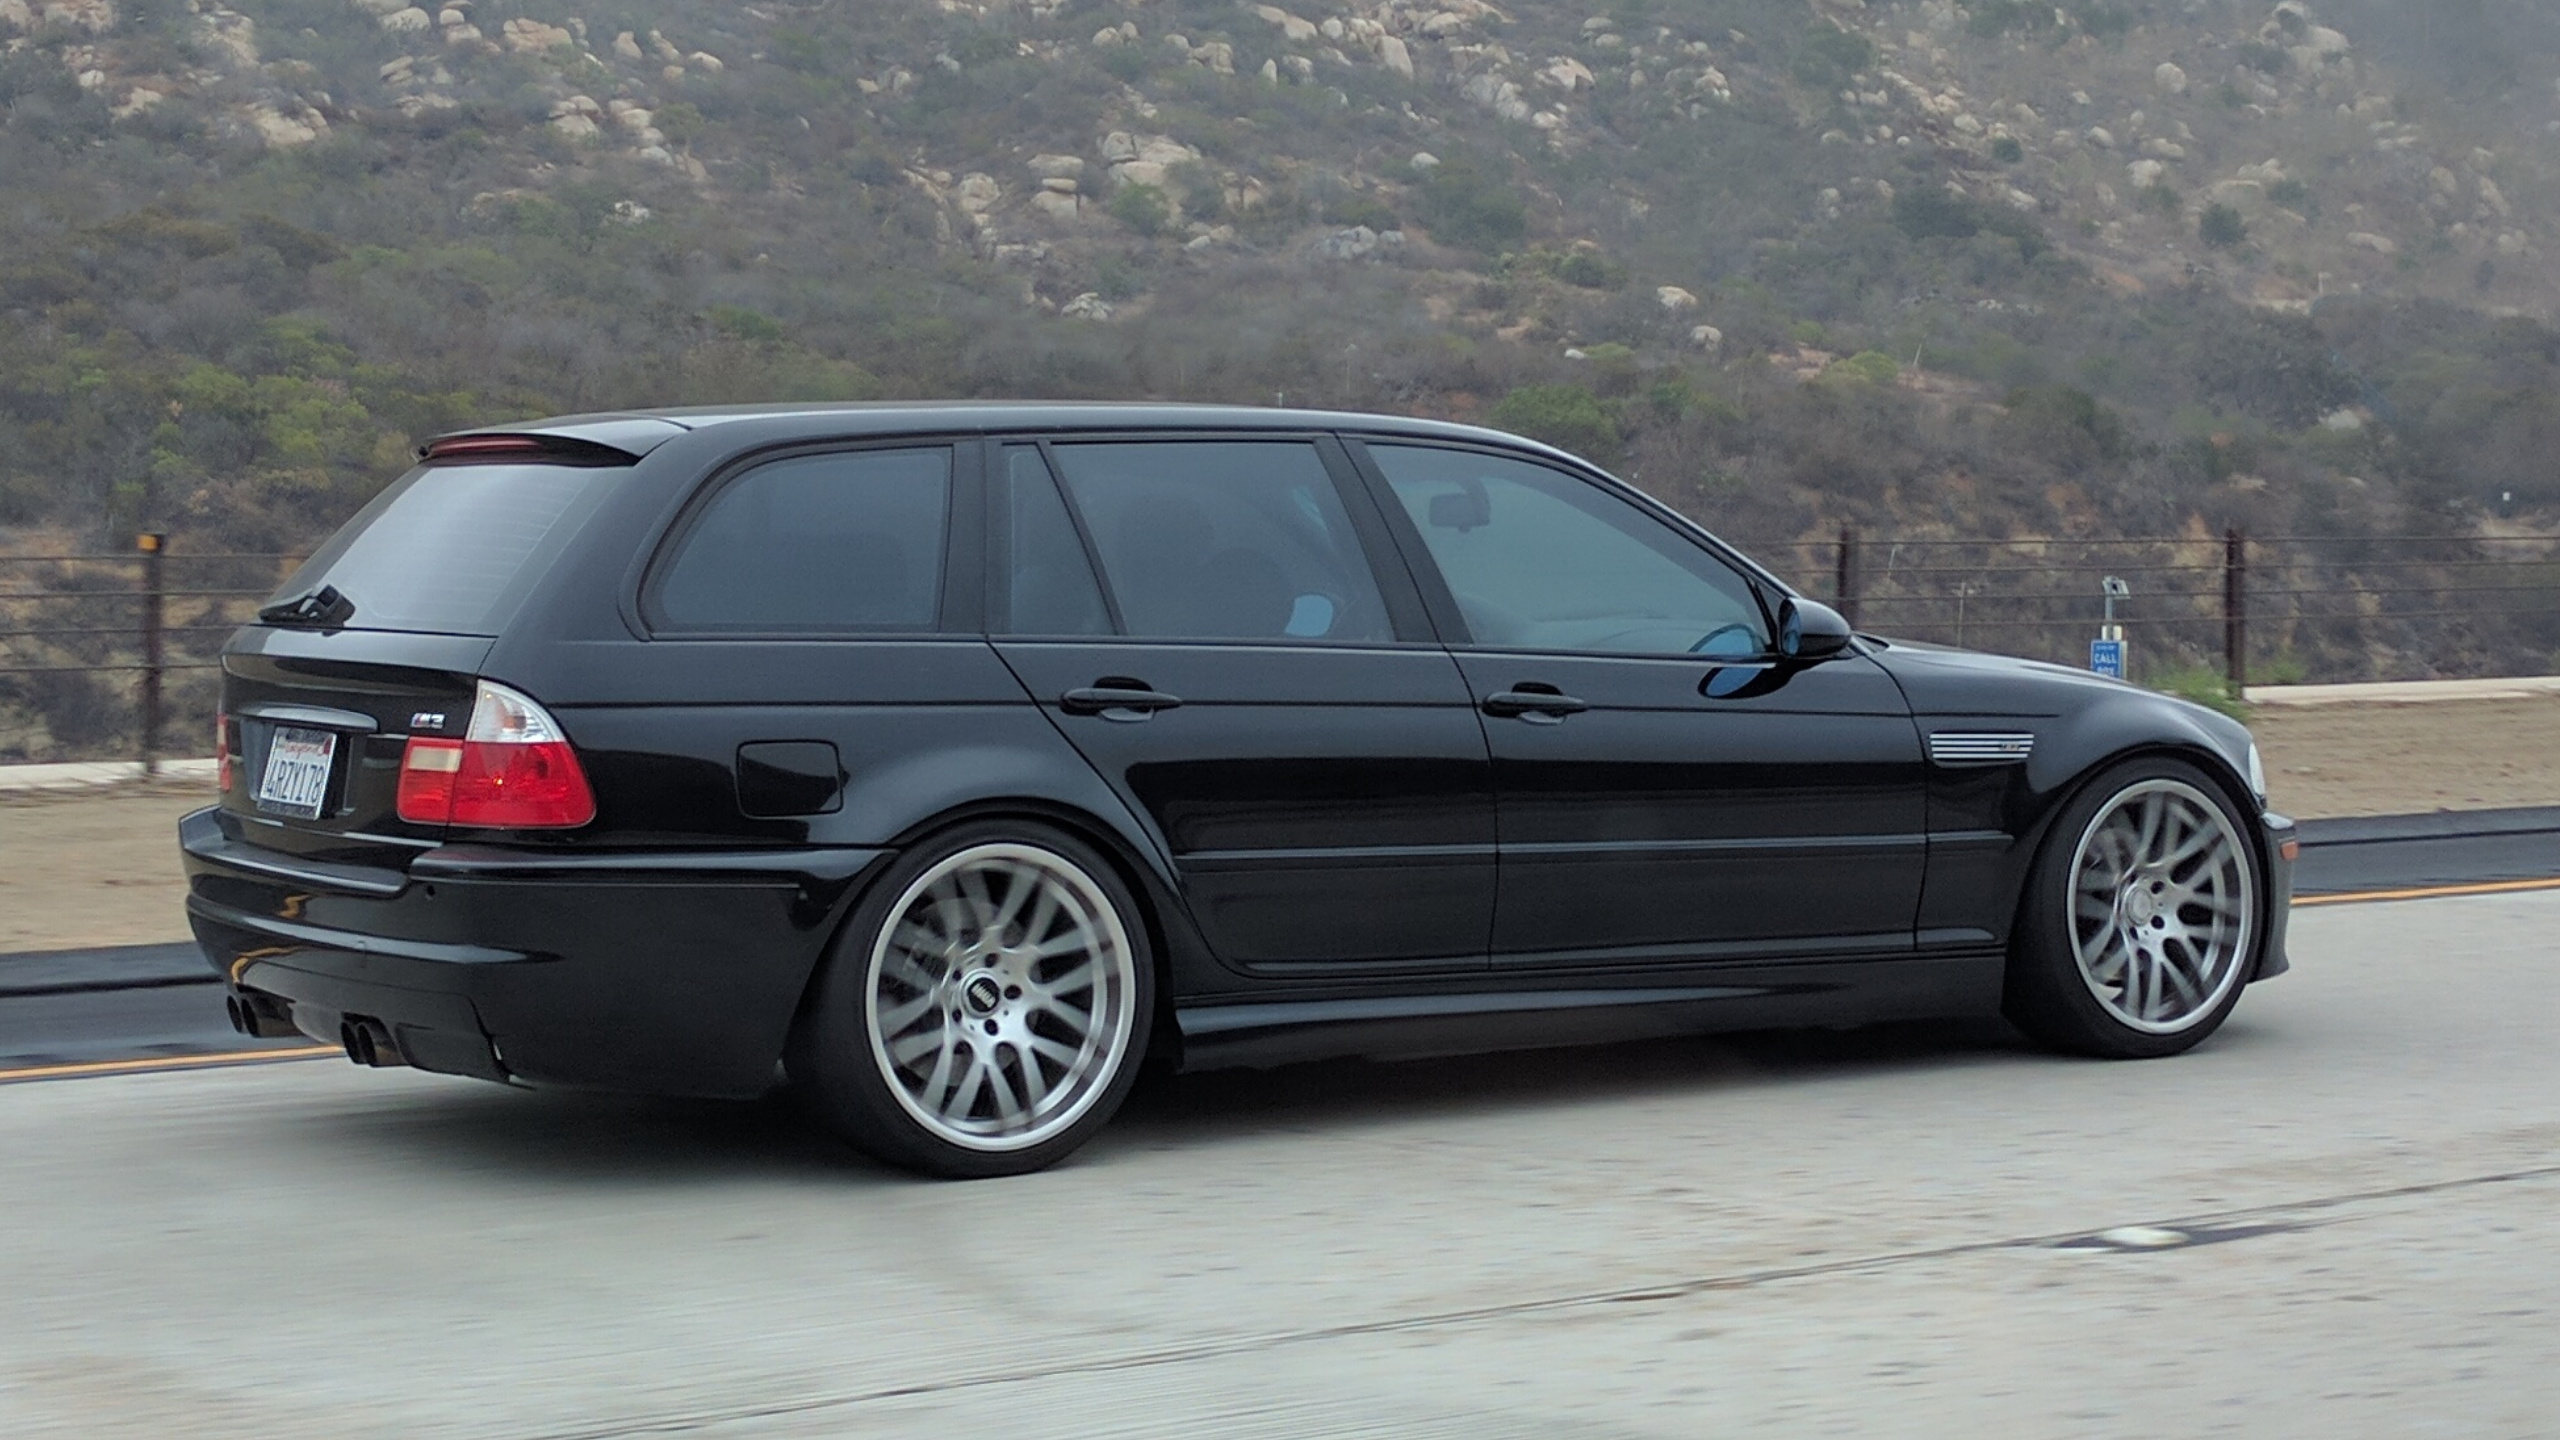 Spotted This E46 M3 Touring Today Cool Bmw S Bmw E39 Touring